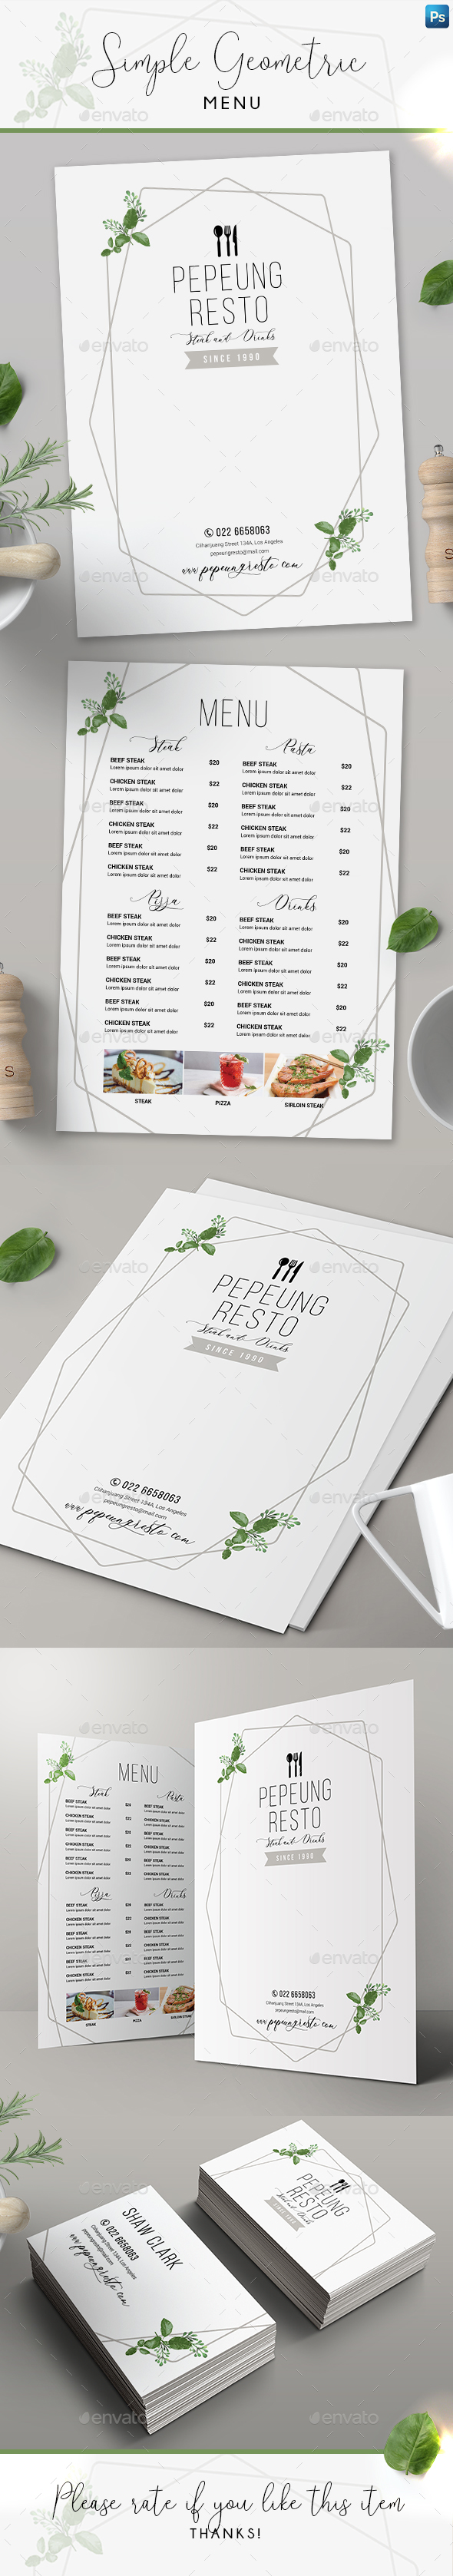 Simple Geometric Menu + Business Card - Food Menus Print Templates